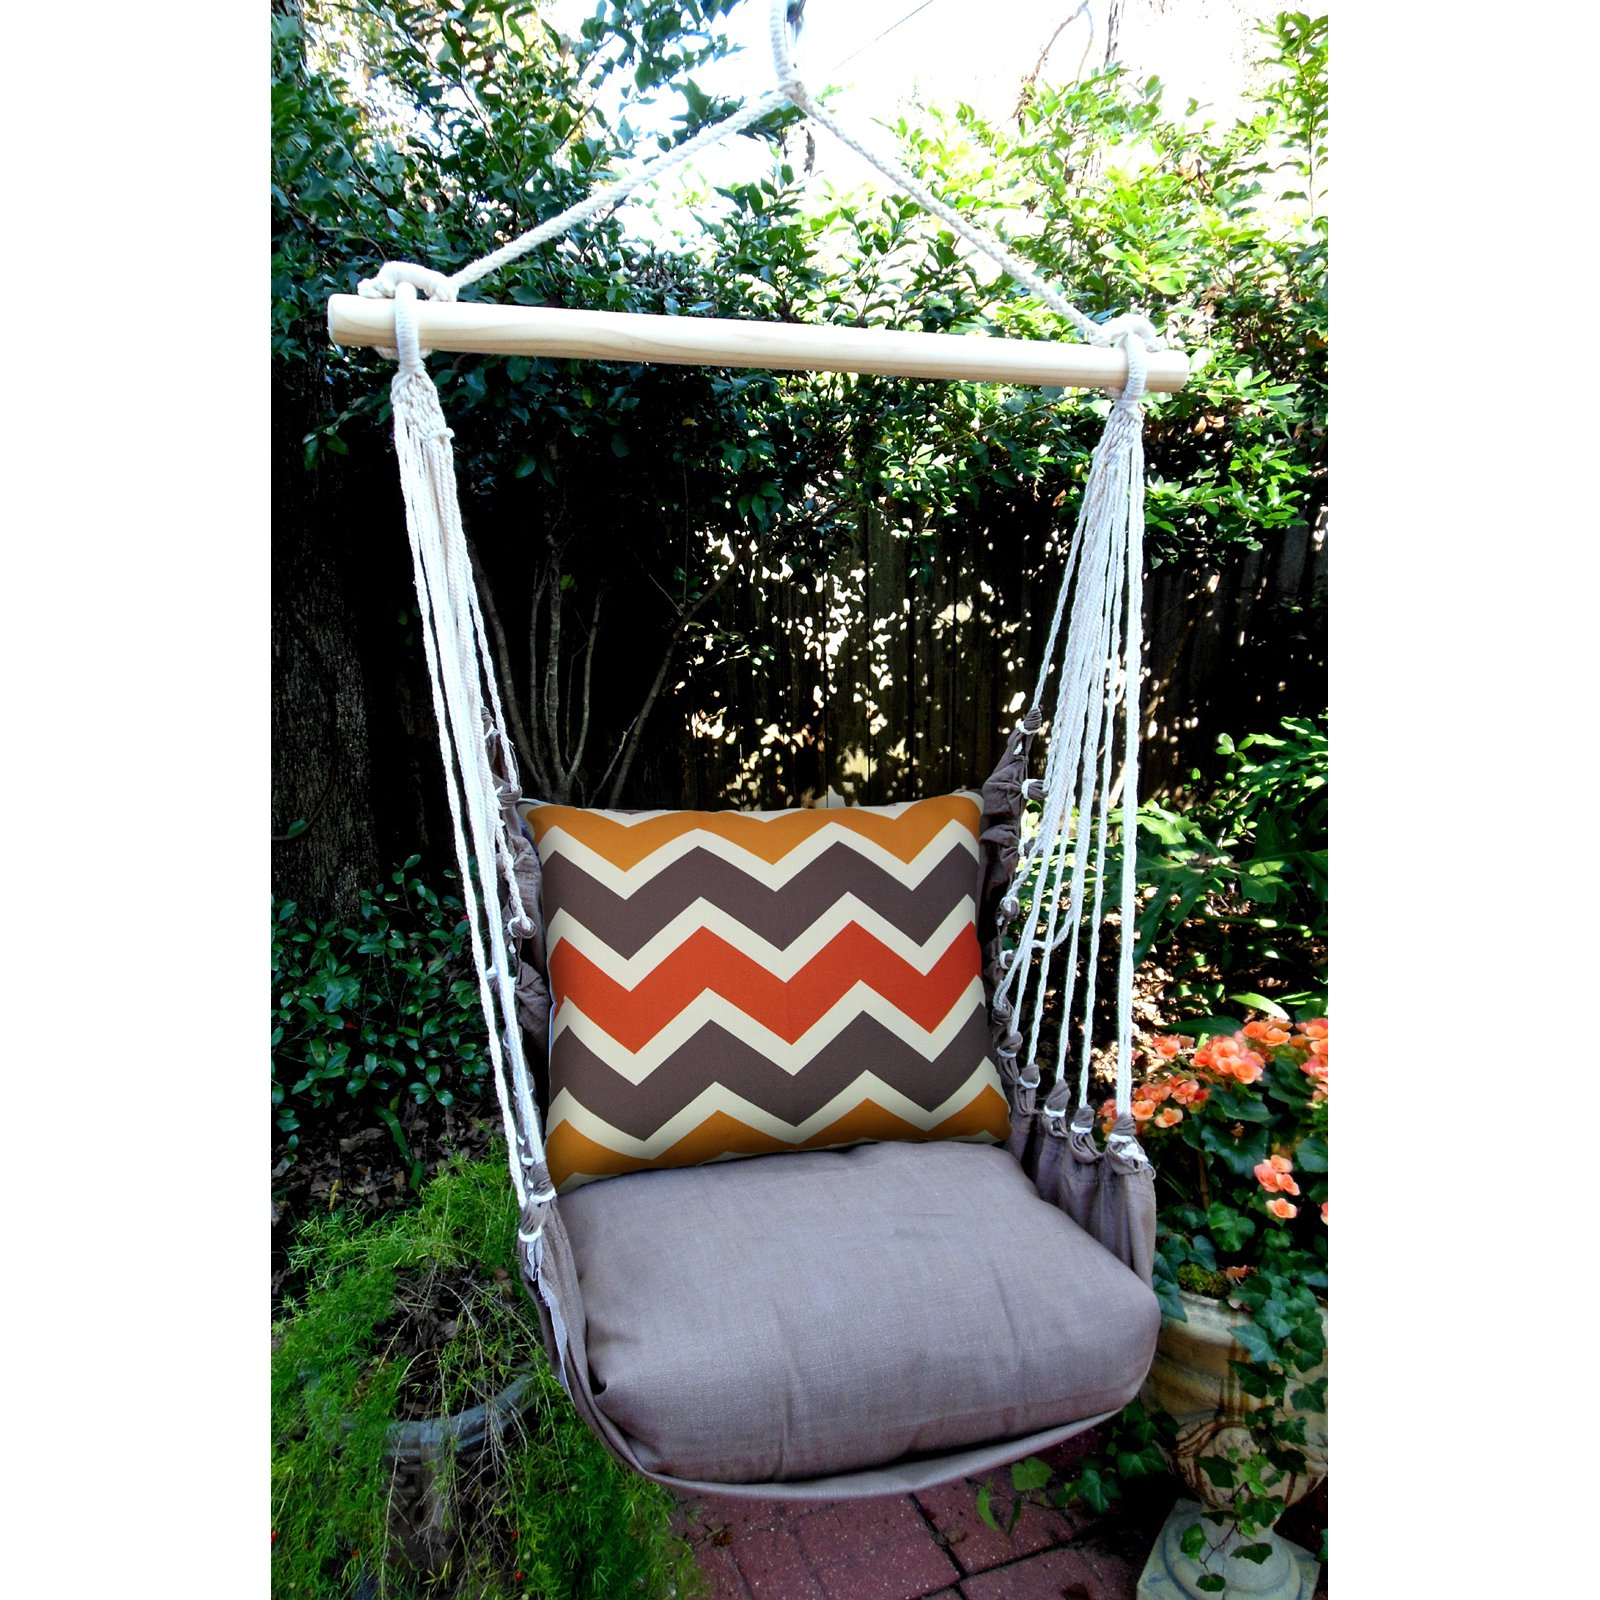 Magnolia Casual Retro Chevron Hammock Chair & Pillow Set